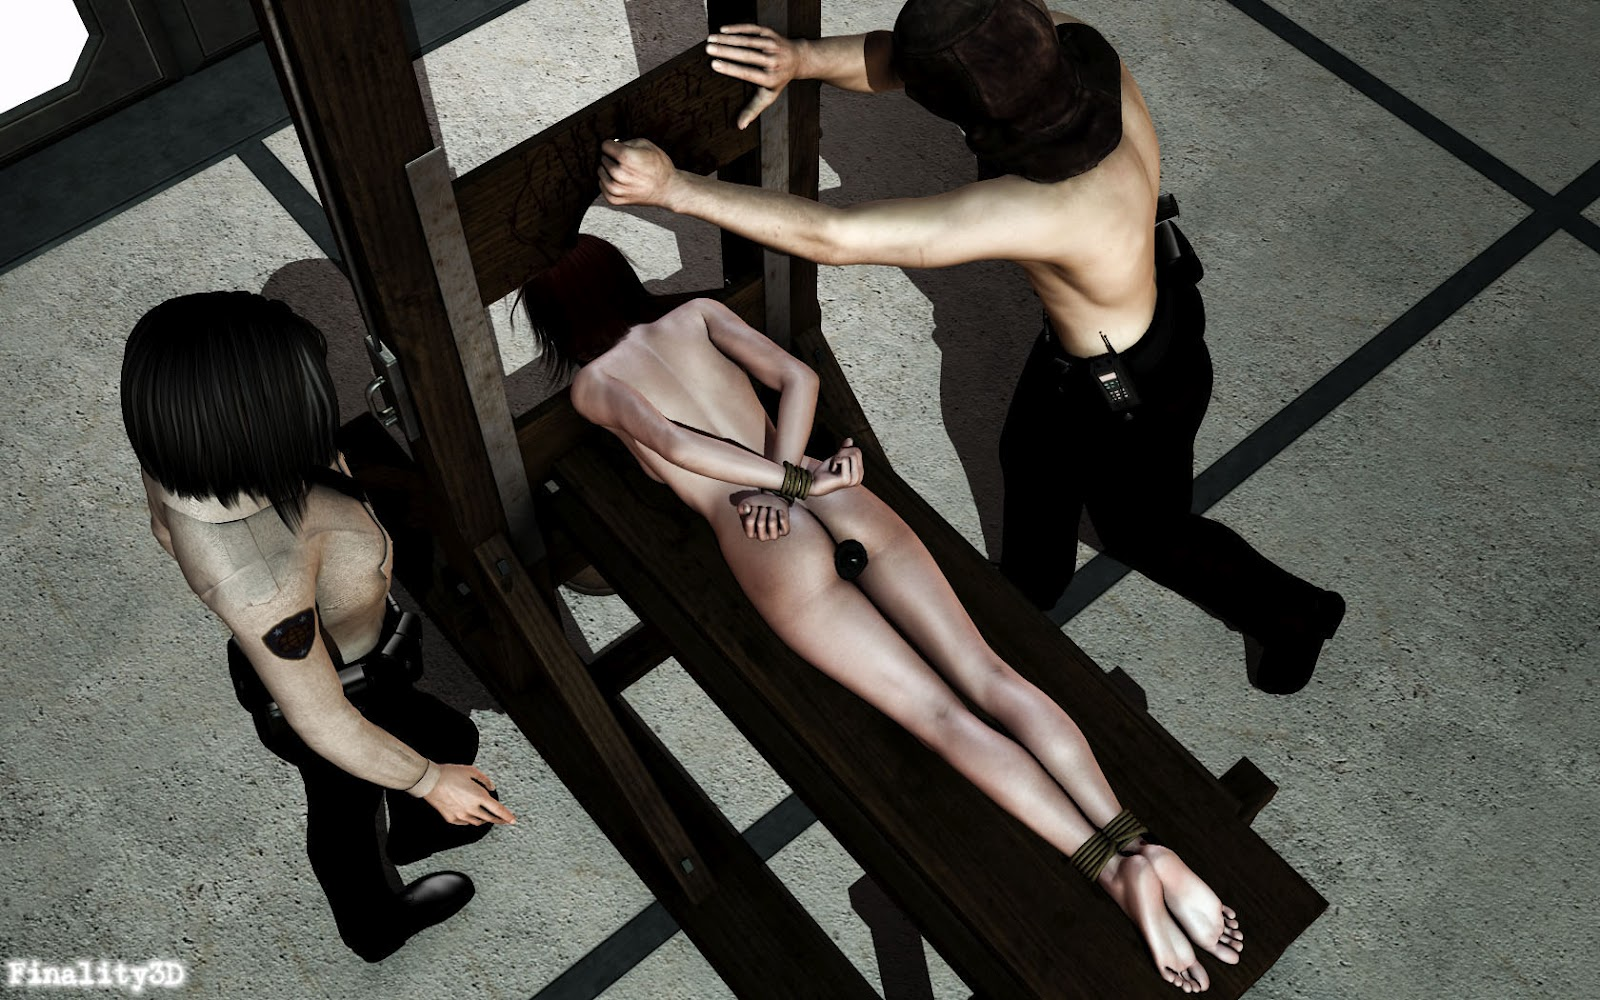 Free bdsm naked women executed erotic photos